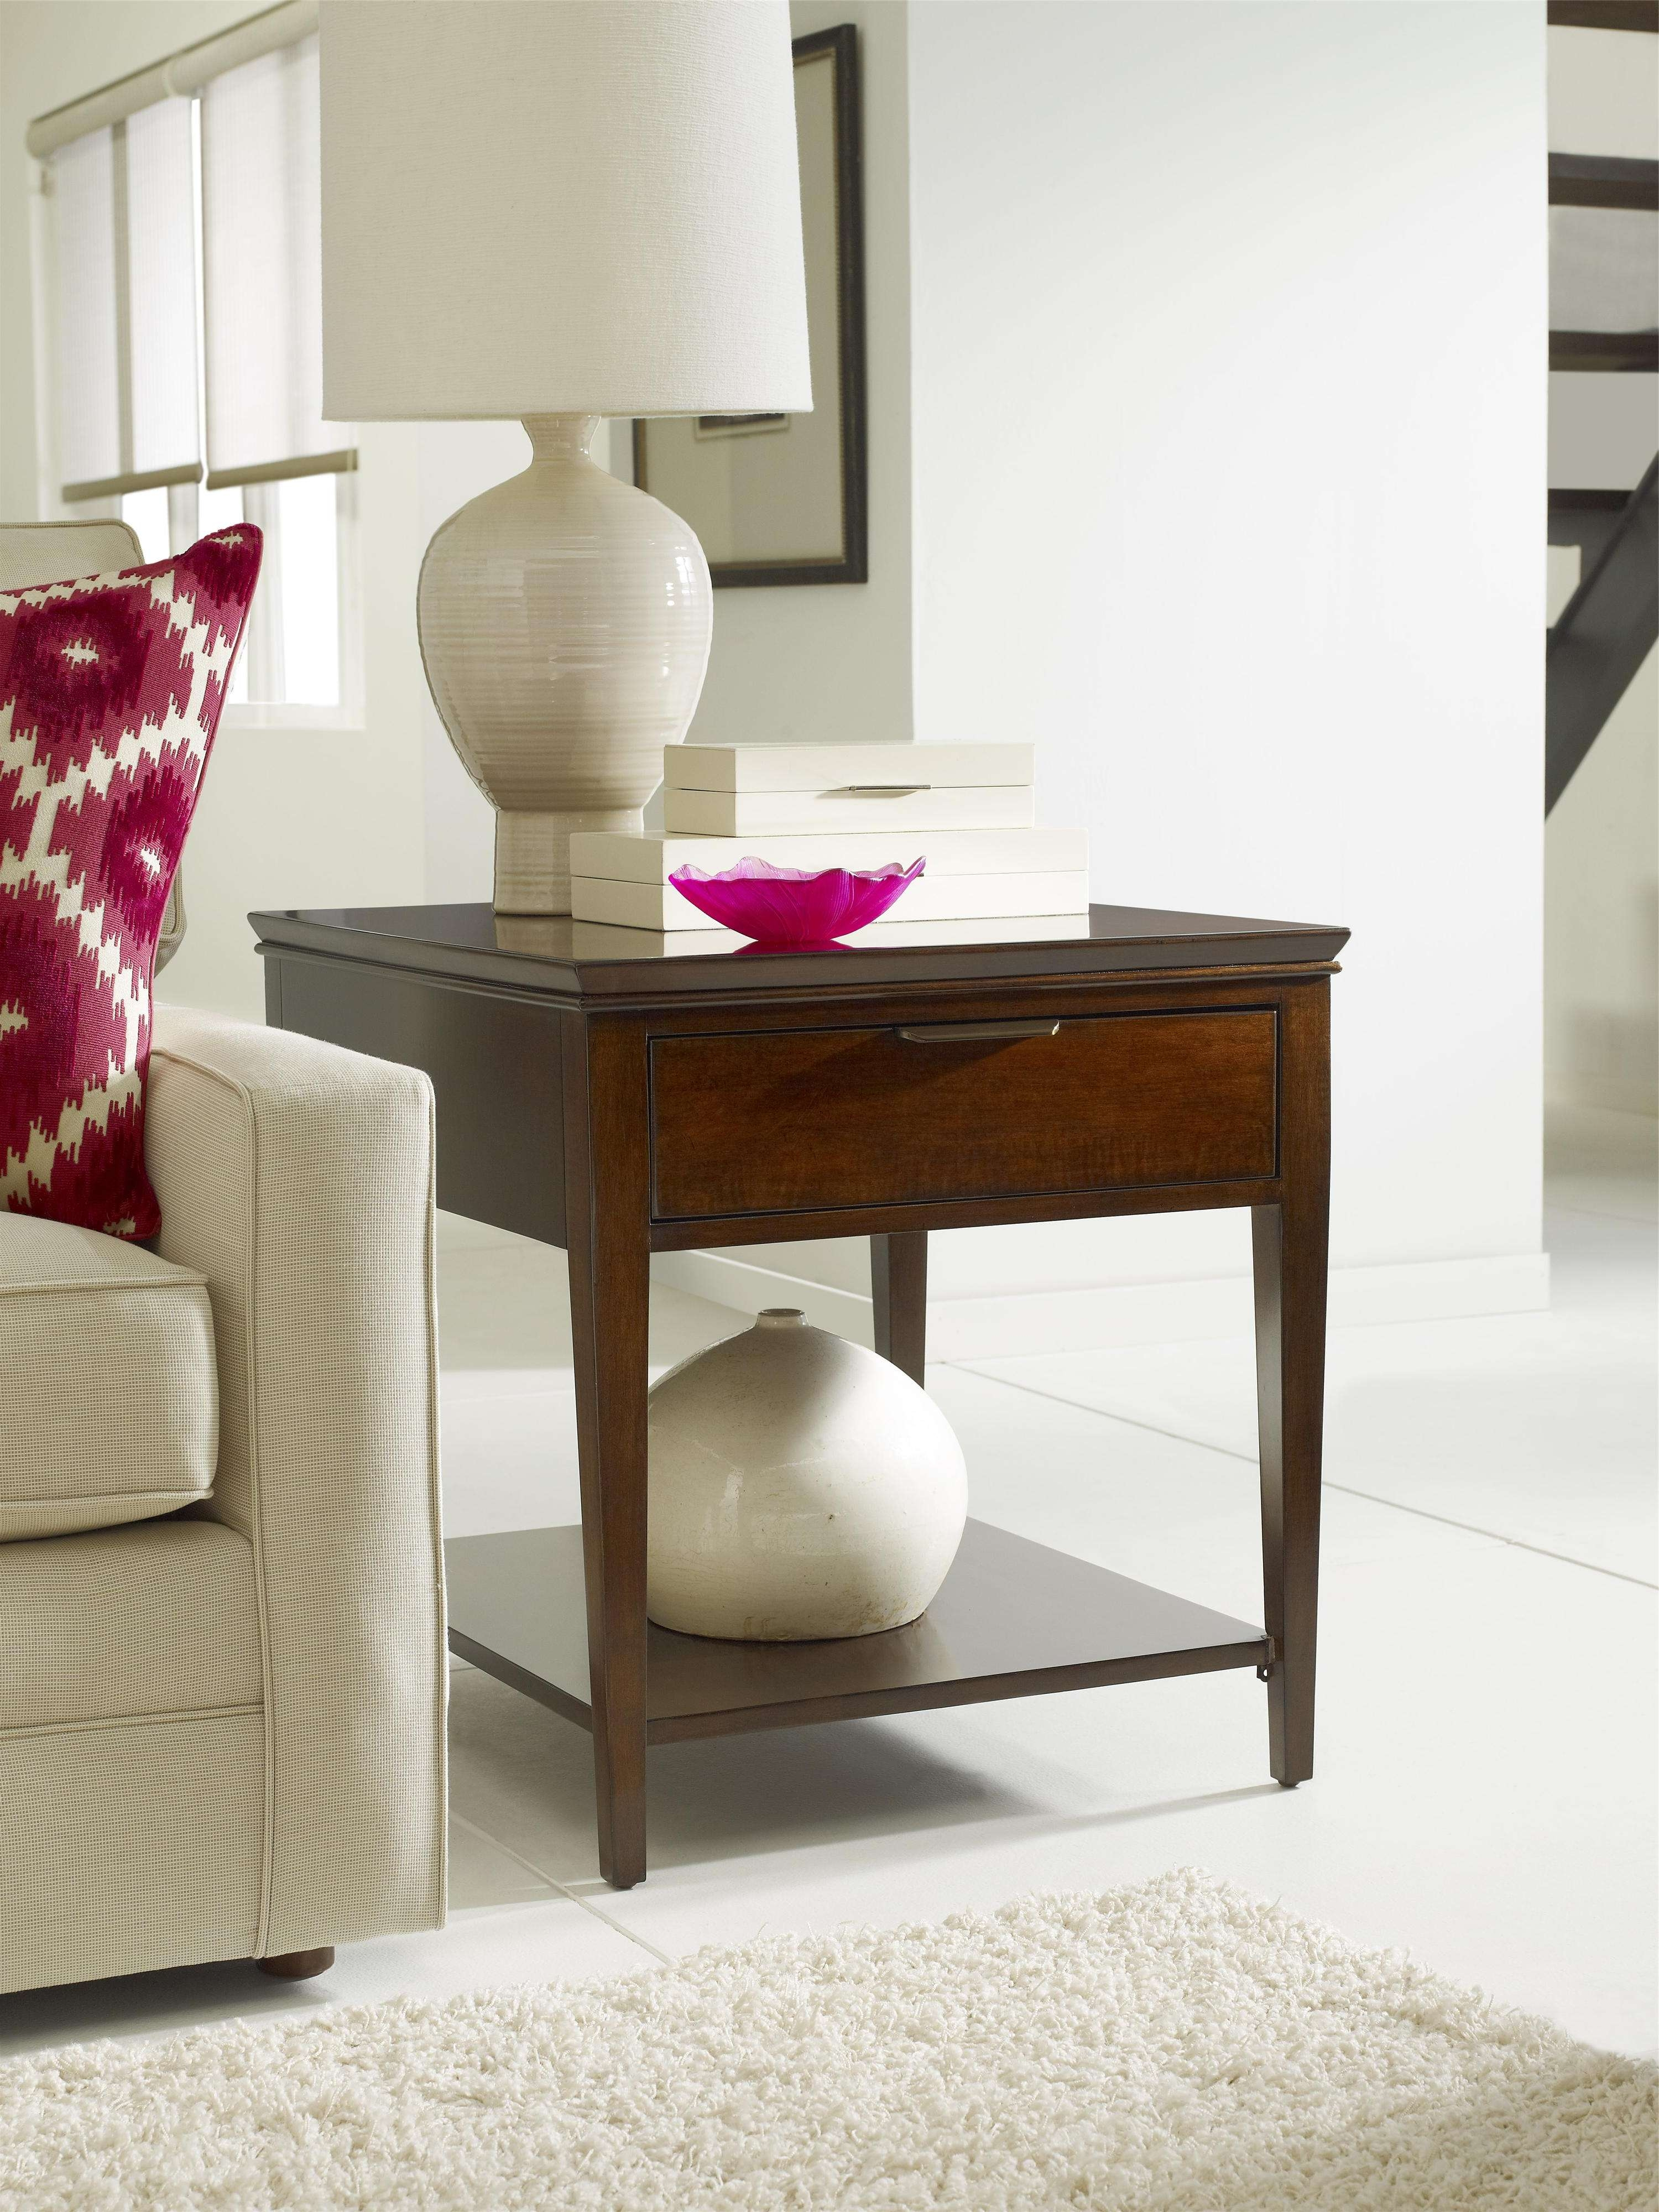 Transitional Elise End Table With One Drawerkincaid Furniture Intended For Recent Elise Coffee Tables (View 16 of 20)